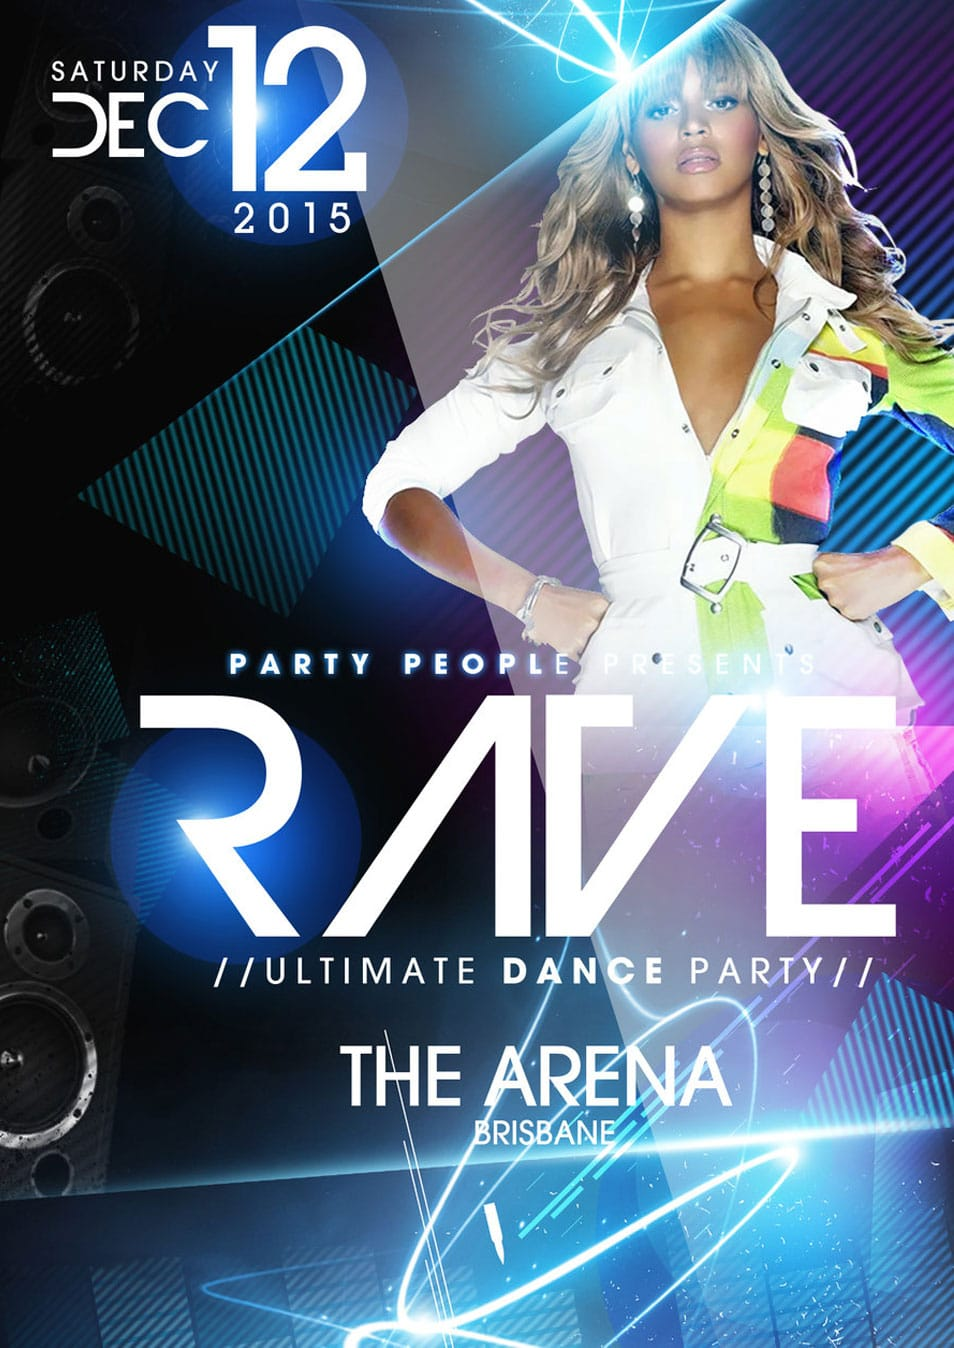 Christmas Rave Flyers Rave Party Psd Flyer Template